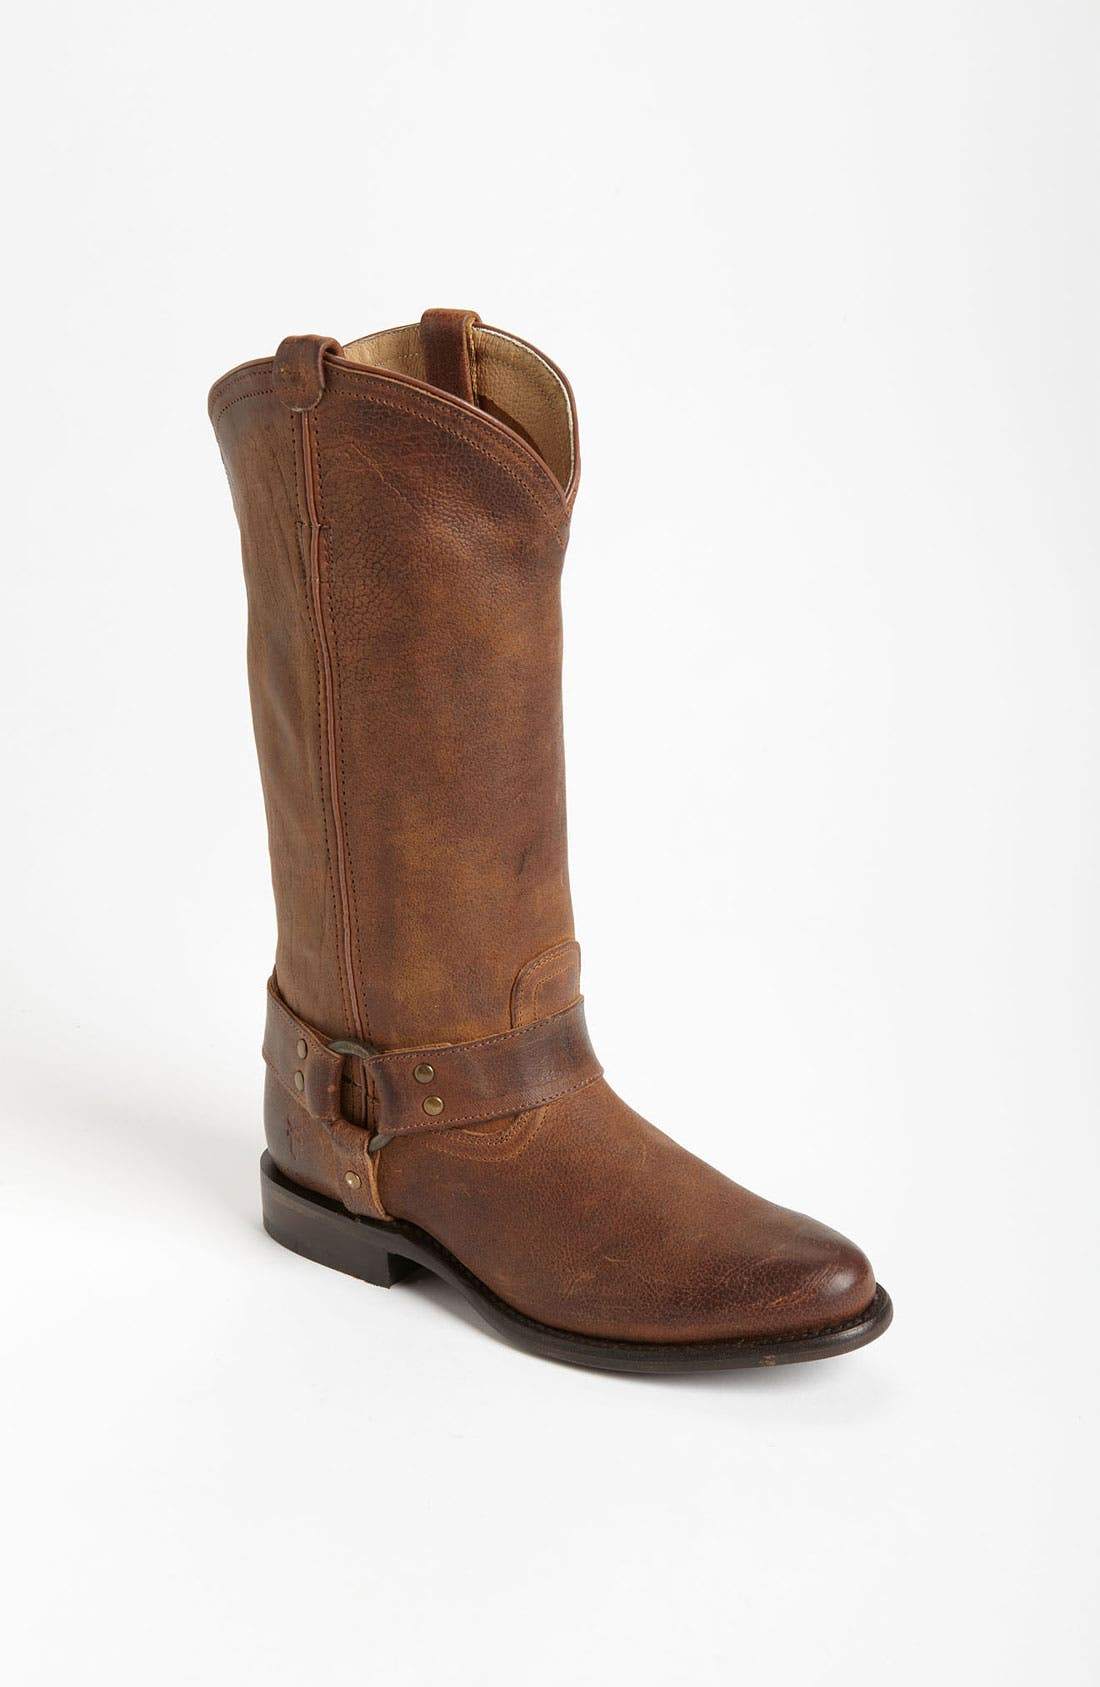 Main Image - Frye 'Wyatt' Harness Boot